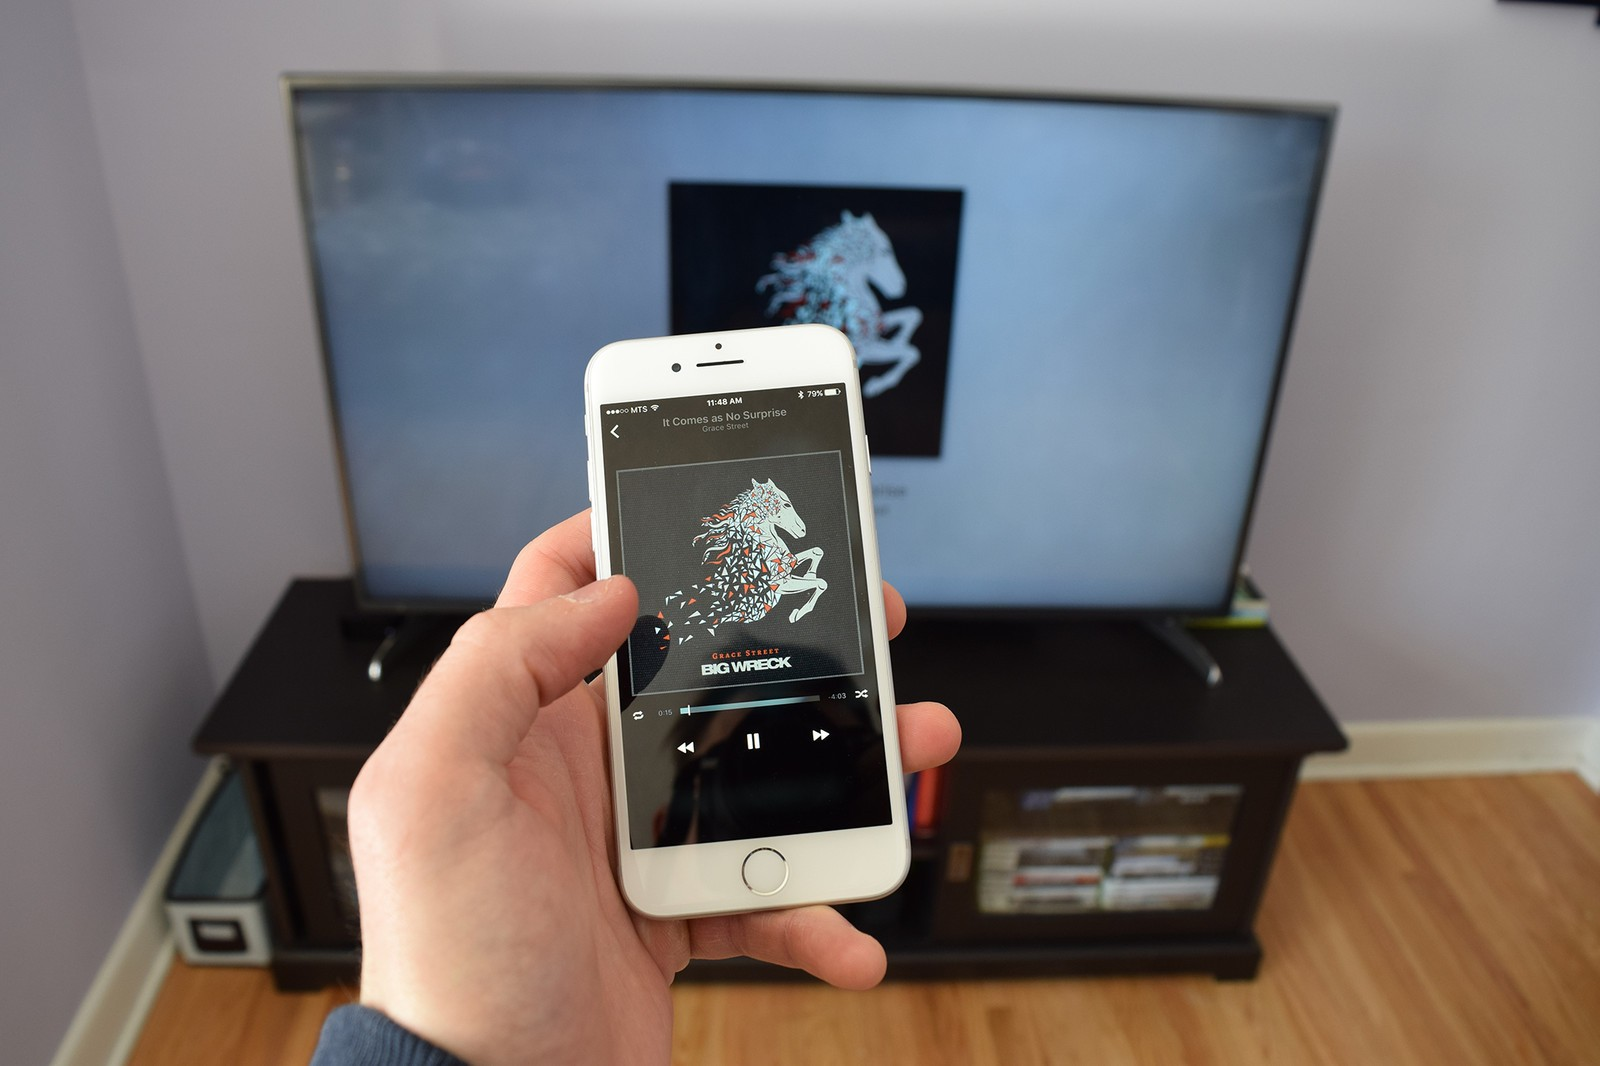 How to use iTunes Remote to control Home Sharing